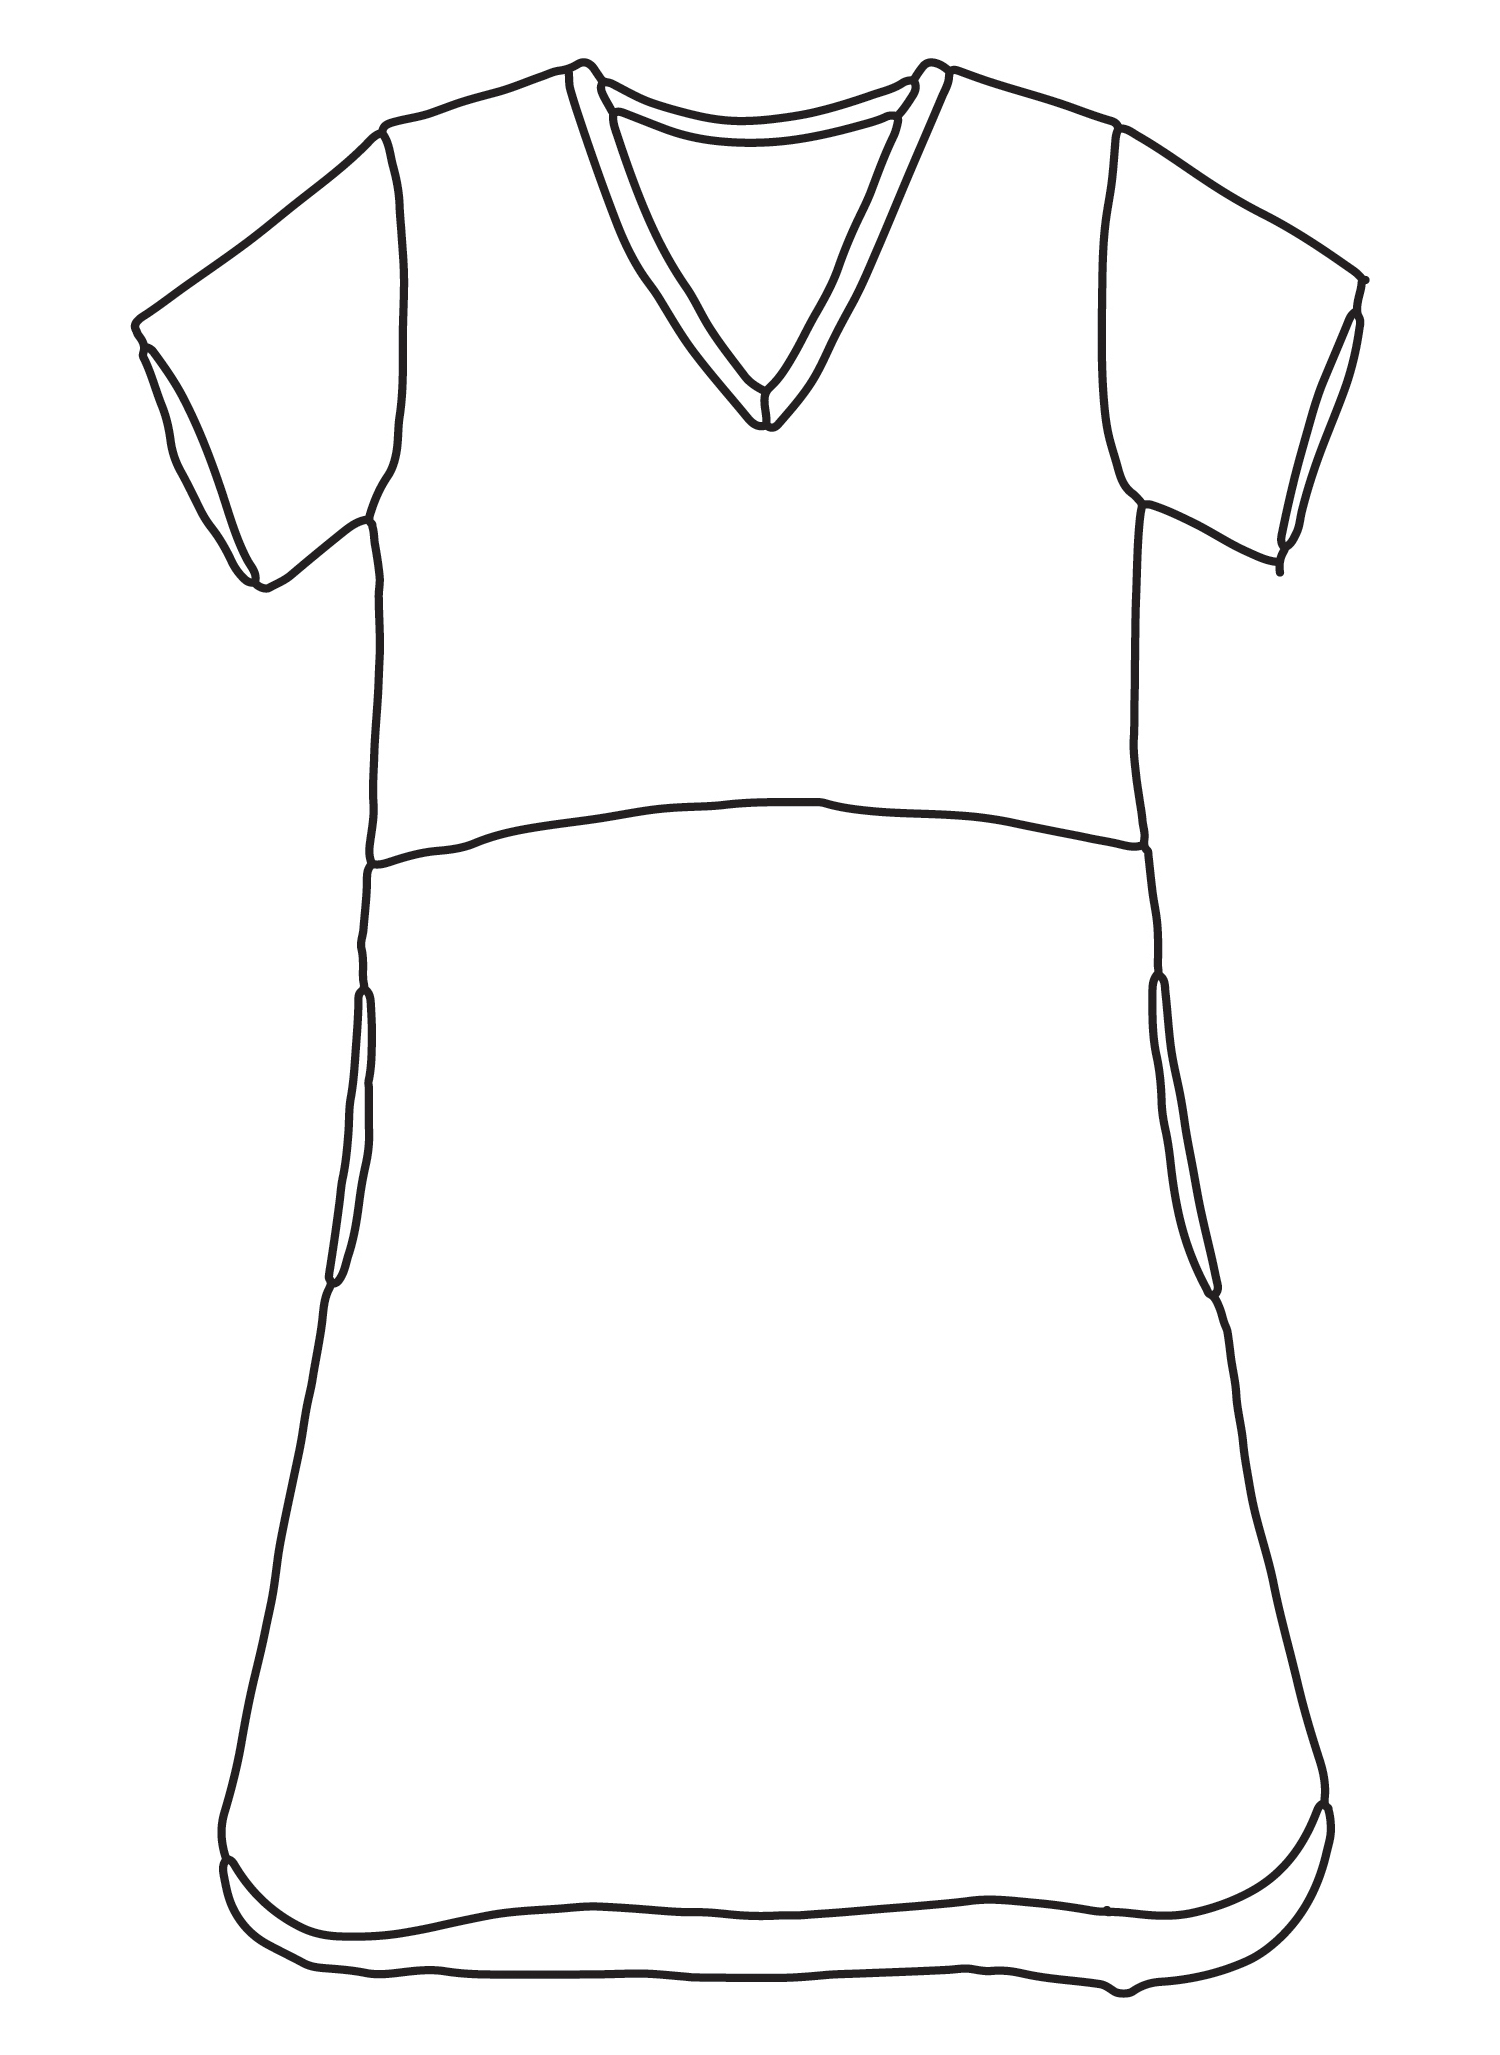 Tee Shirt Dress sketch image